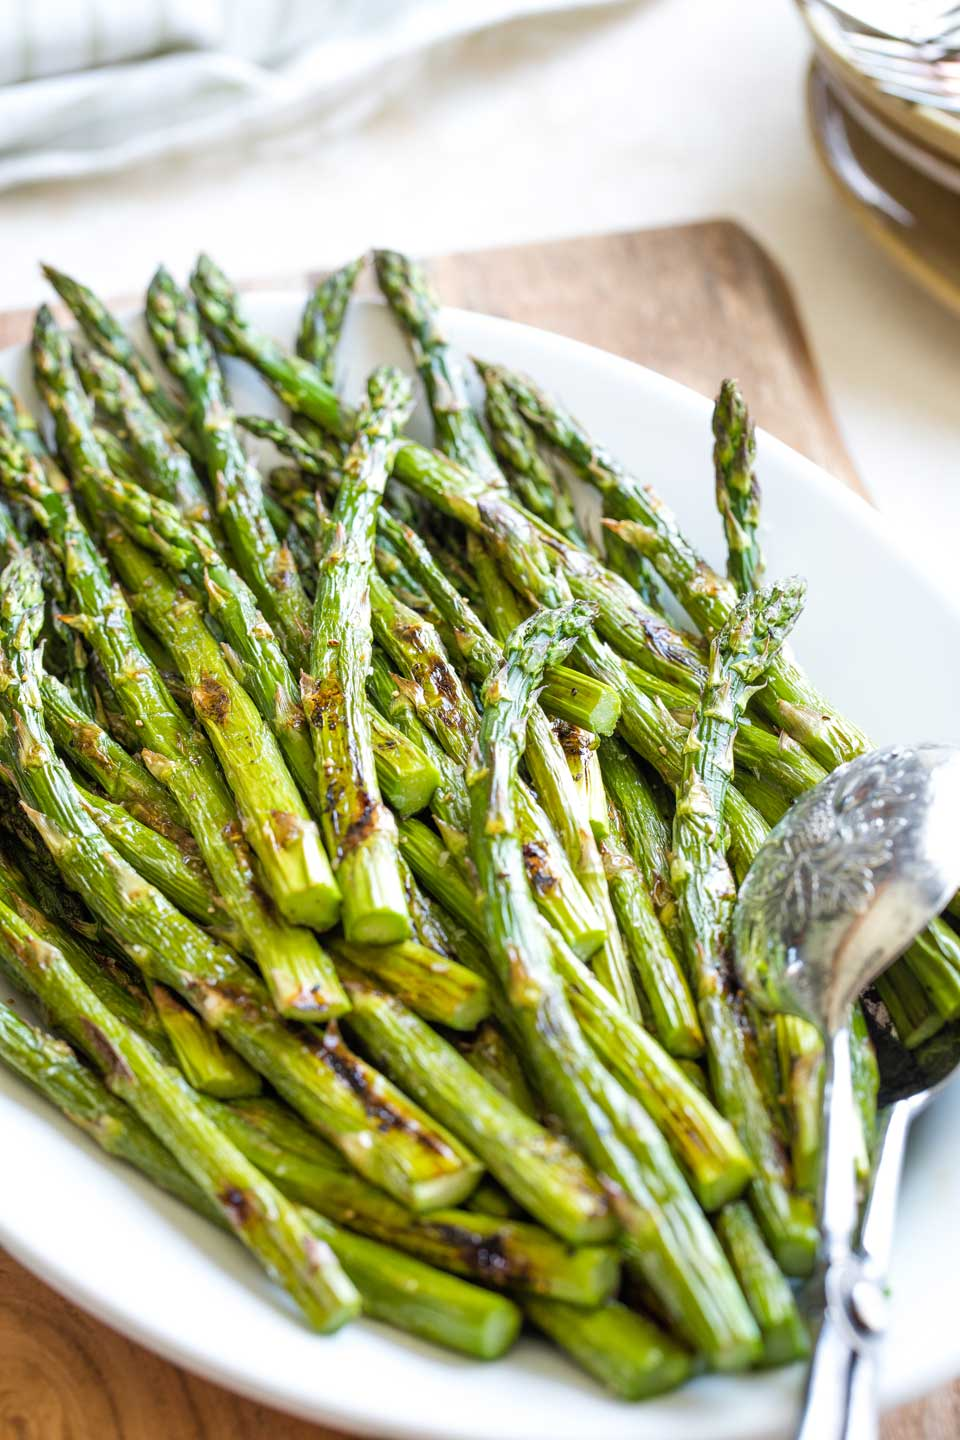 A 3/4 angle shot from the bottom of the asparagus stalks, with the finished stalks piled on a white platter (next to serving tongs) so you can see lots of the brown, roasted spots.